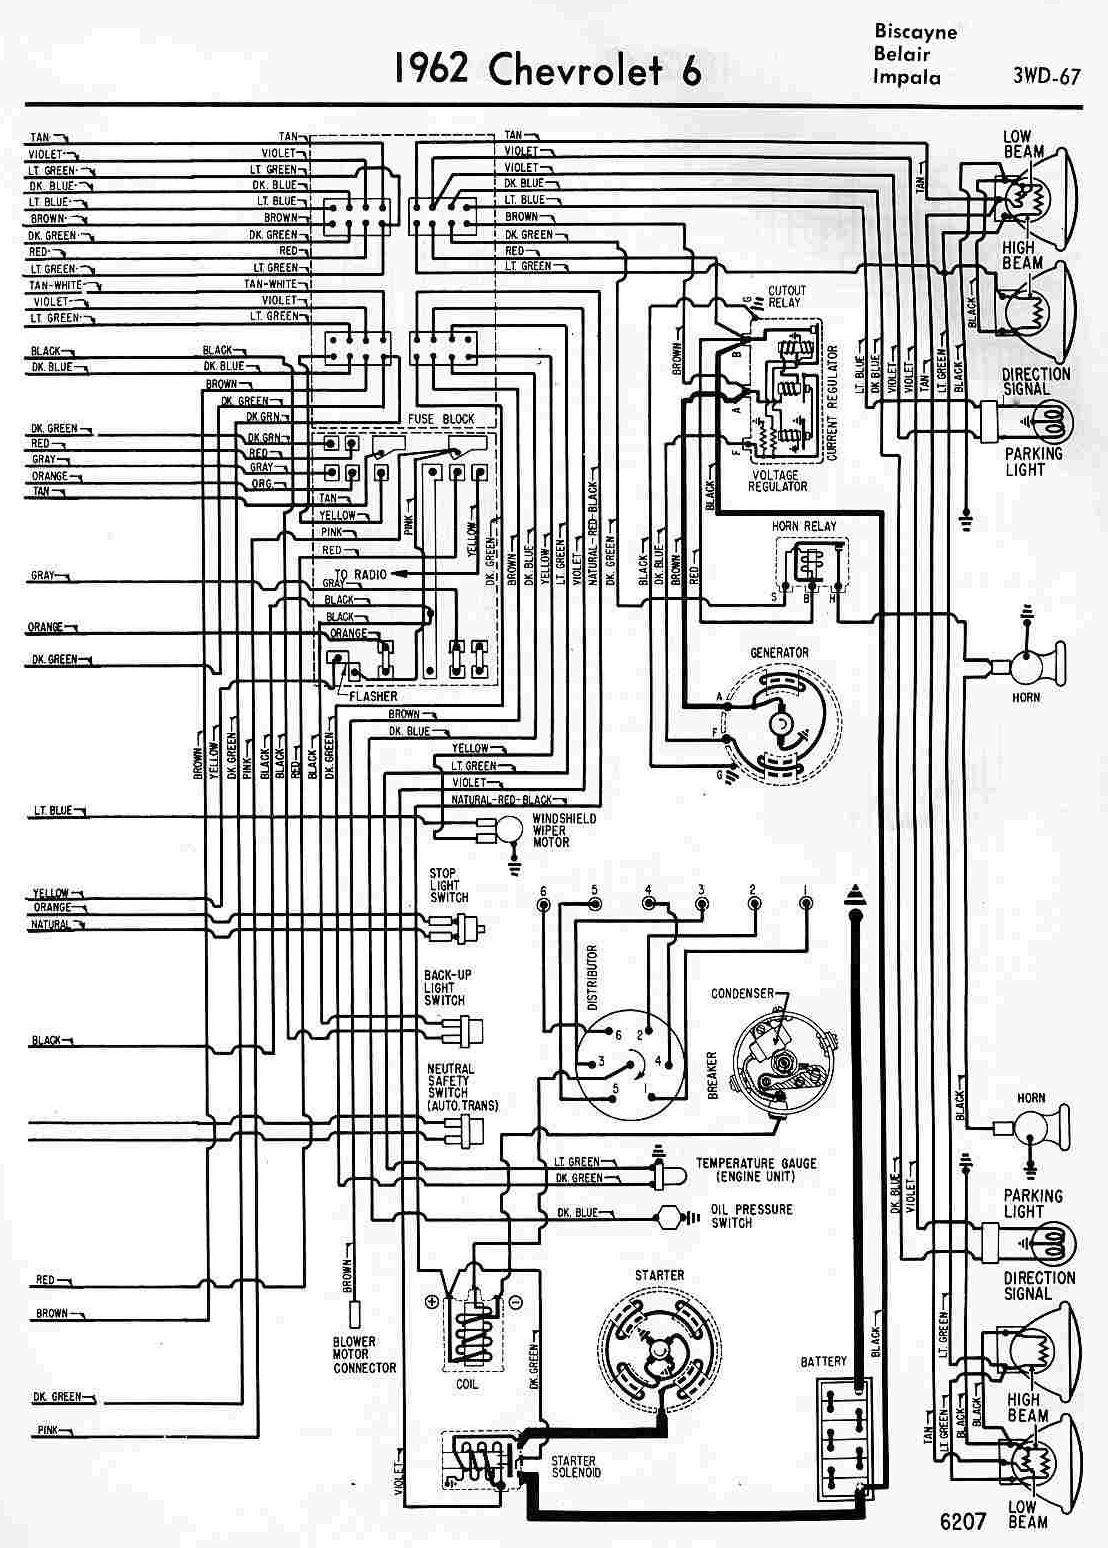 01 impala ignition wiring diagram schematics wiring diagrams u2022 rh seniorlivinguniversity co